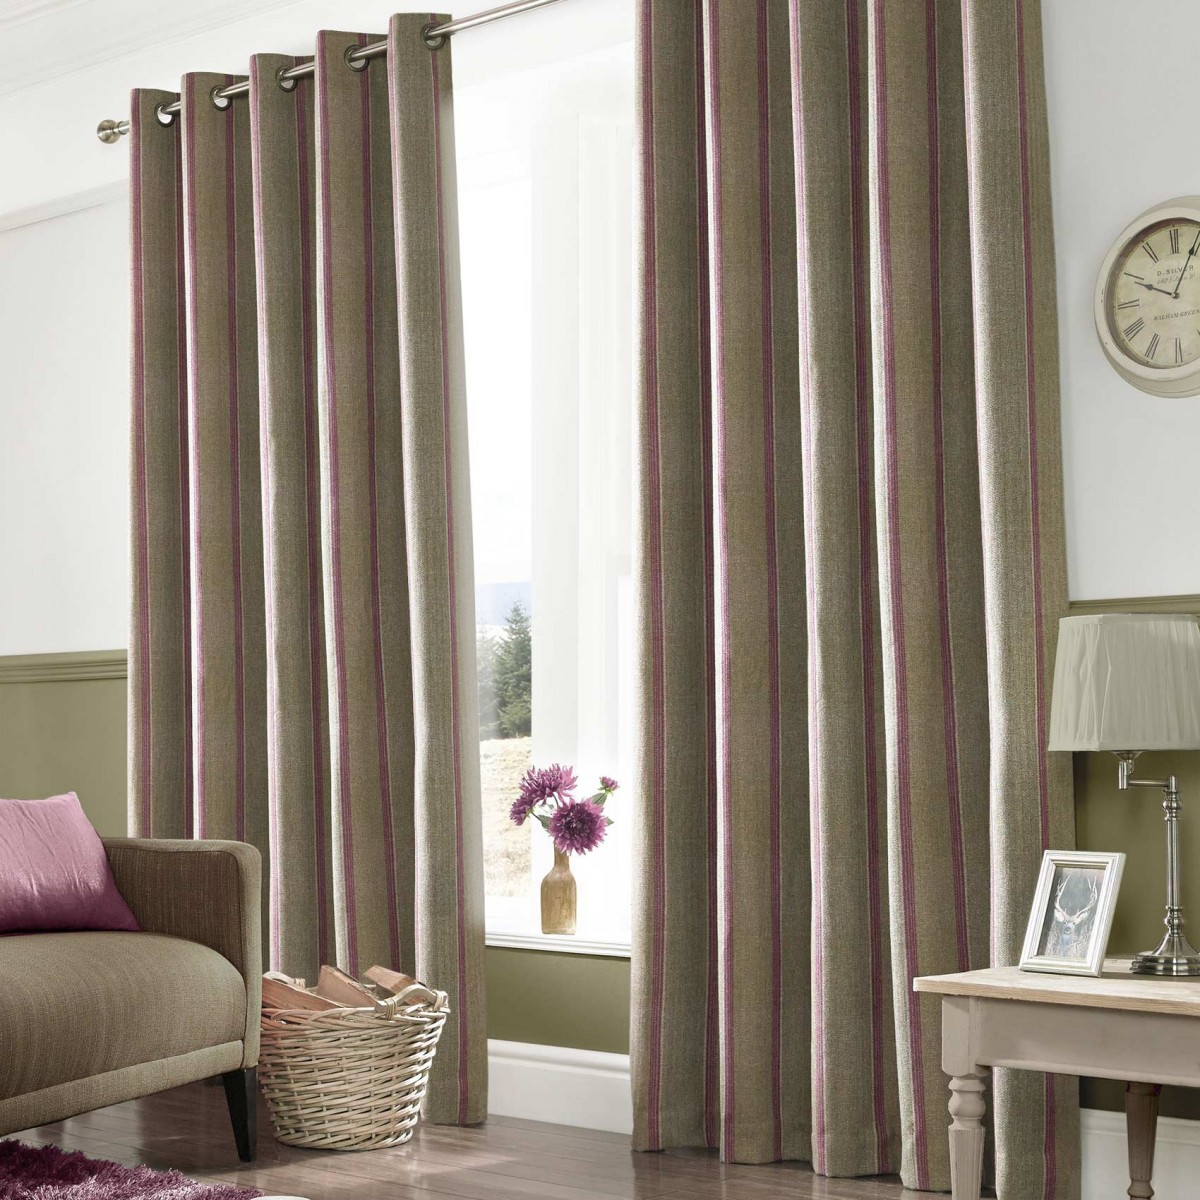 downton mulberry ready made curtains 90x54. Black Bedroom Furniture Sets. Home Design Ideas